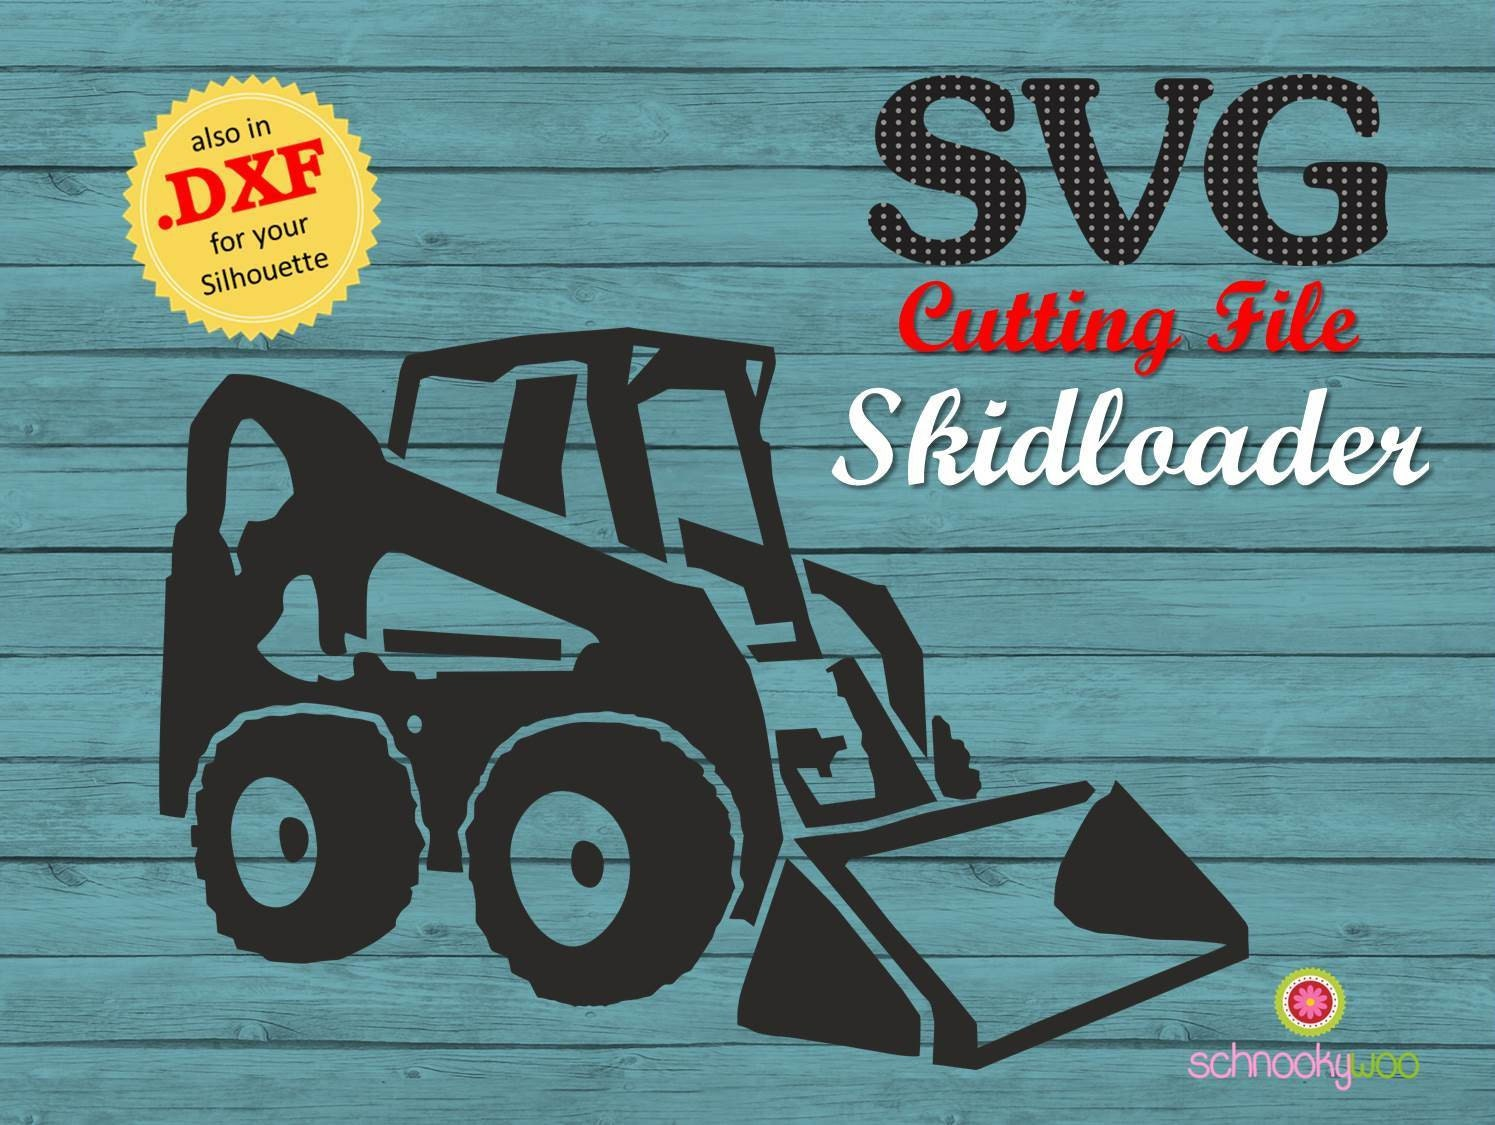 Skidloader Svg Skid Steer Loader Skid Steer Svg Skid Steer